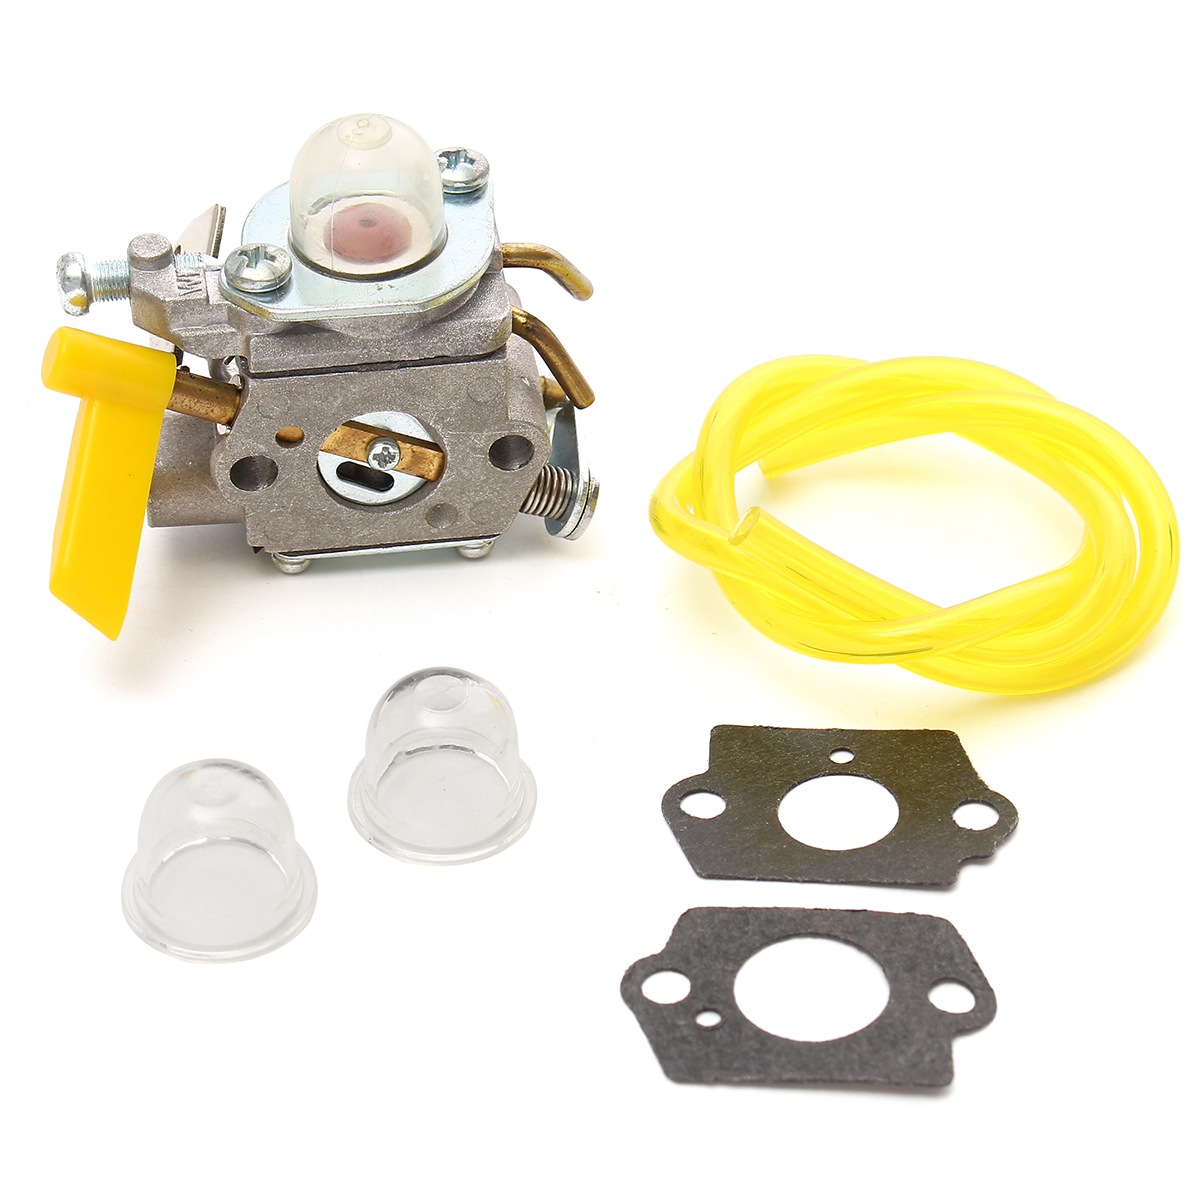 Carburetor Accessories For Ryobi Homelite String Trimmer Lawnmower Brushcutter